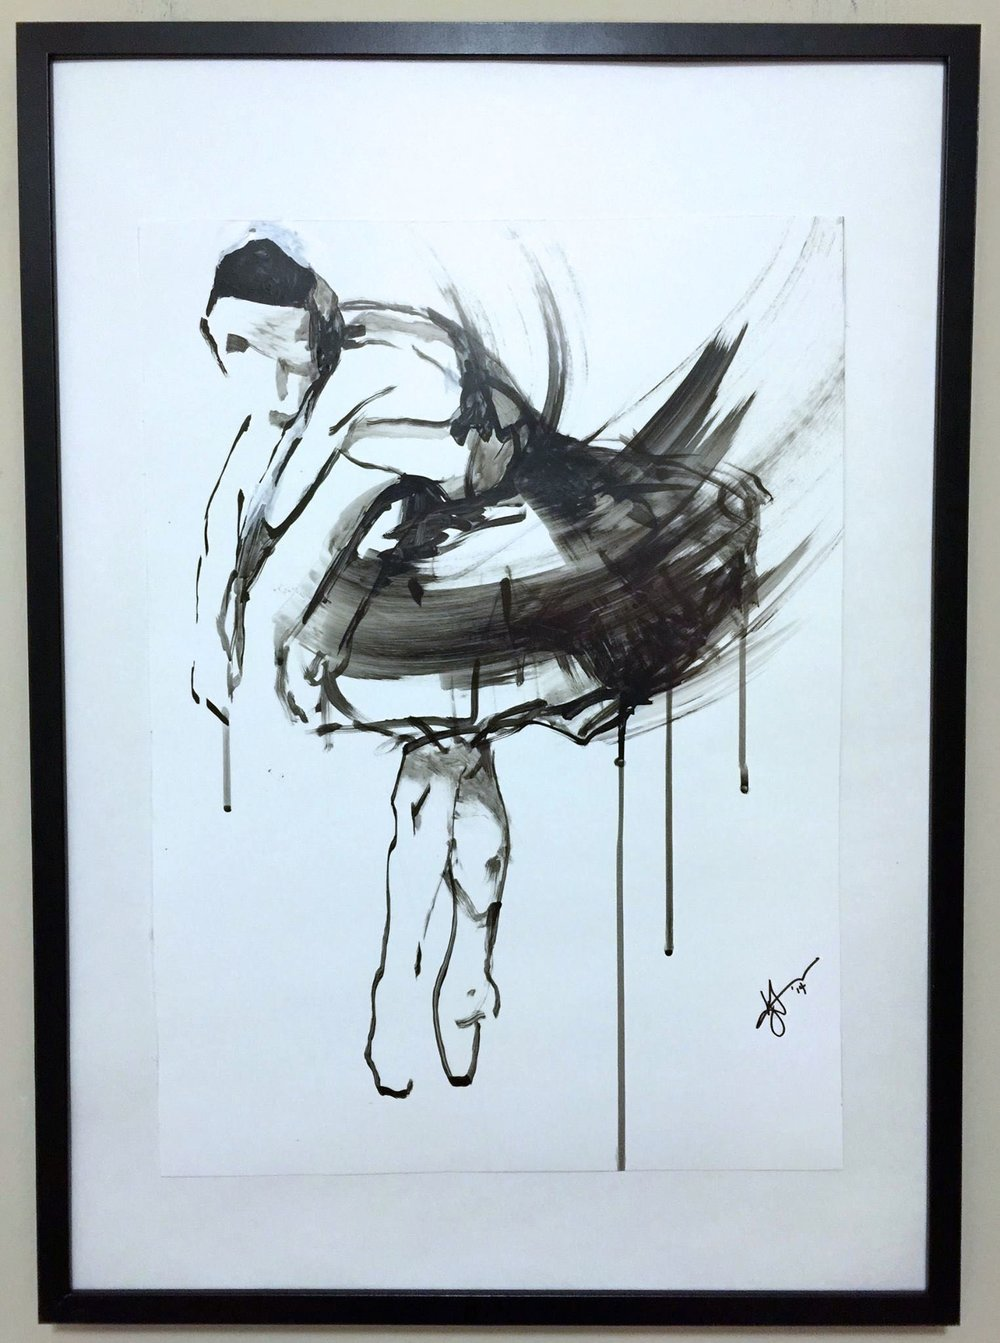 Copy of Dying Swan, 2015. Ink on paper. 24x18